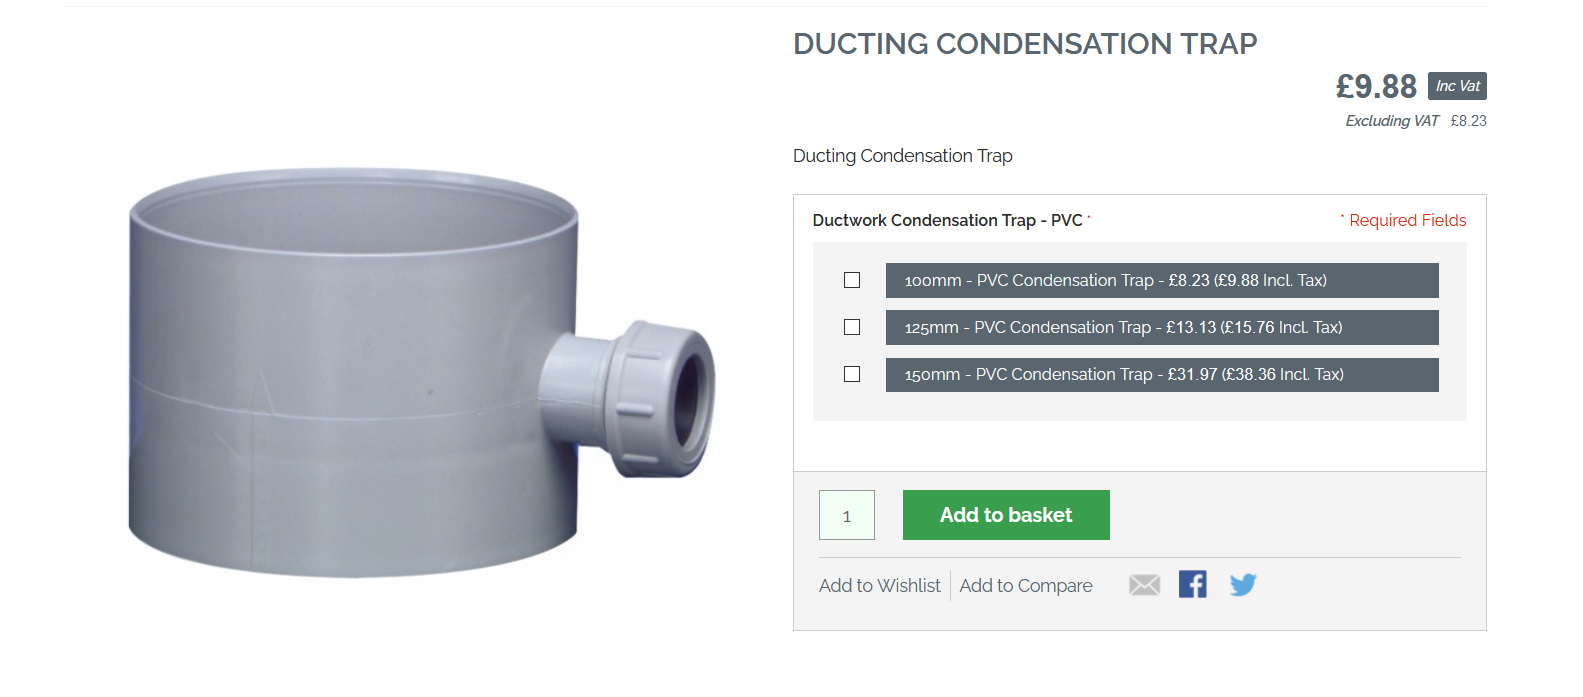 Ducting Condensation Trap.PNG